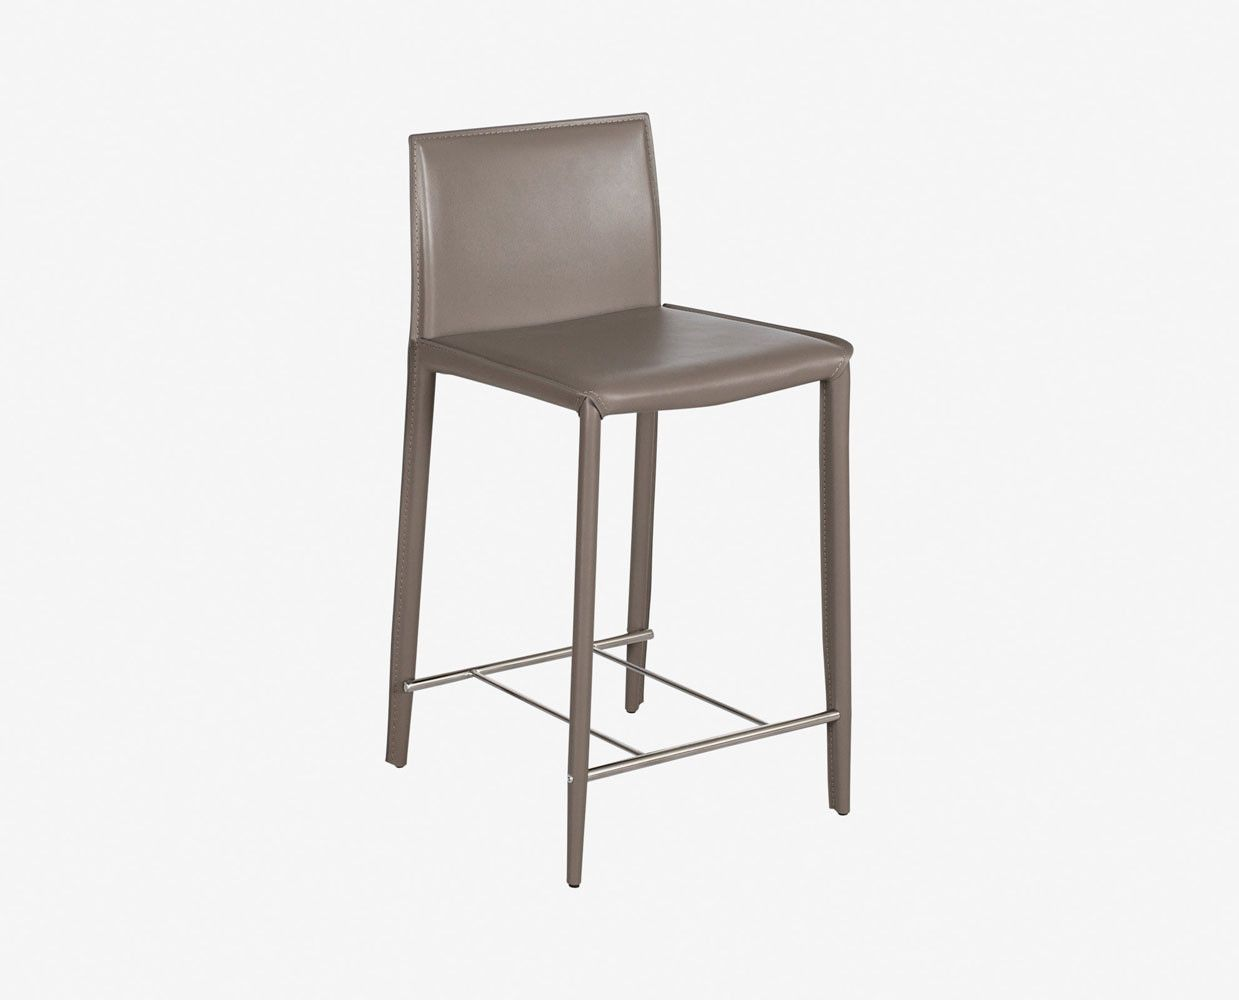 Pleasing Bastian Counter Stool Dining Seating In 2019 Counter Lamtechconsult Wood Chair Design Ideas Lamtechconsultcom